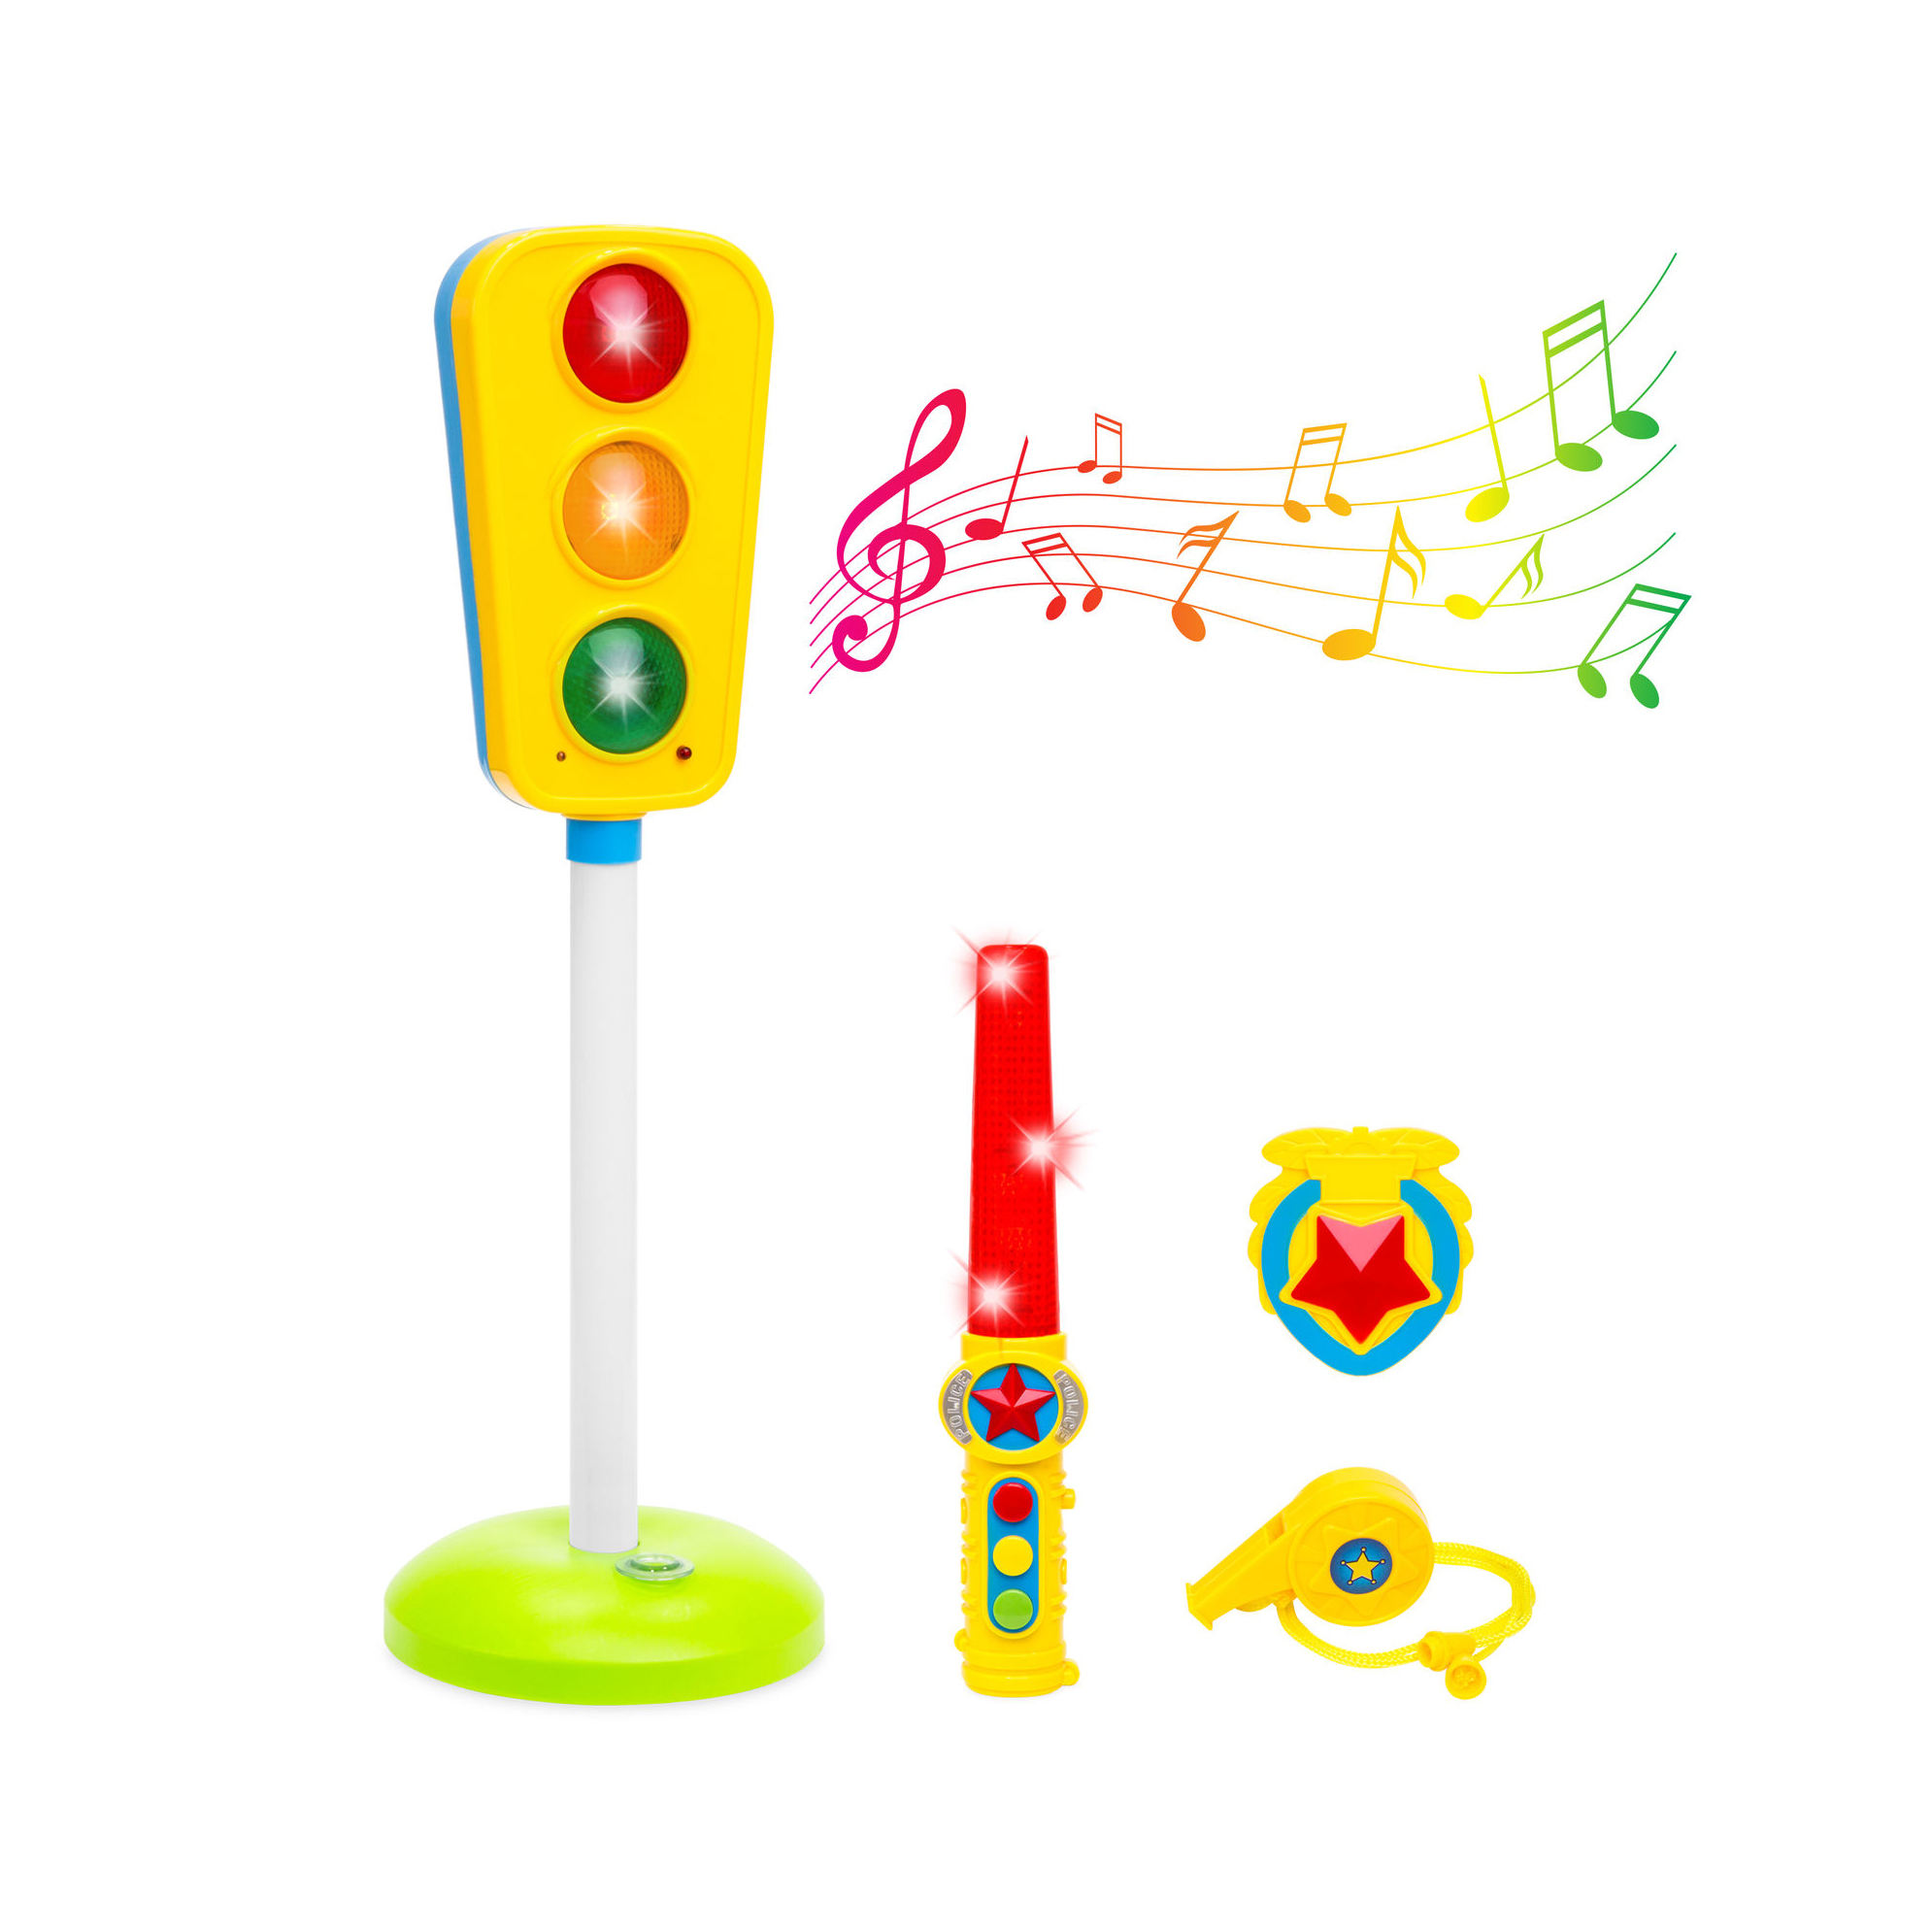 Toy Traffic Light w/Sound, Whistle, Badge Wand Kids, Children - Multicolor